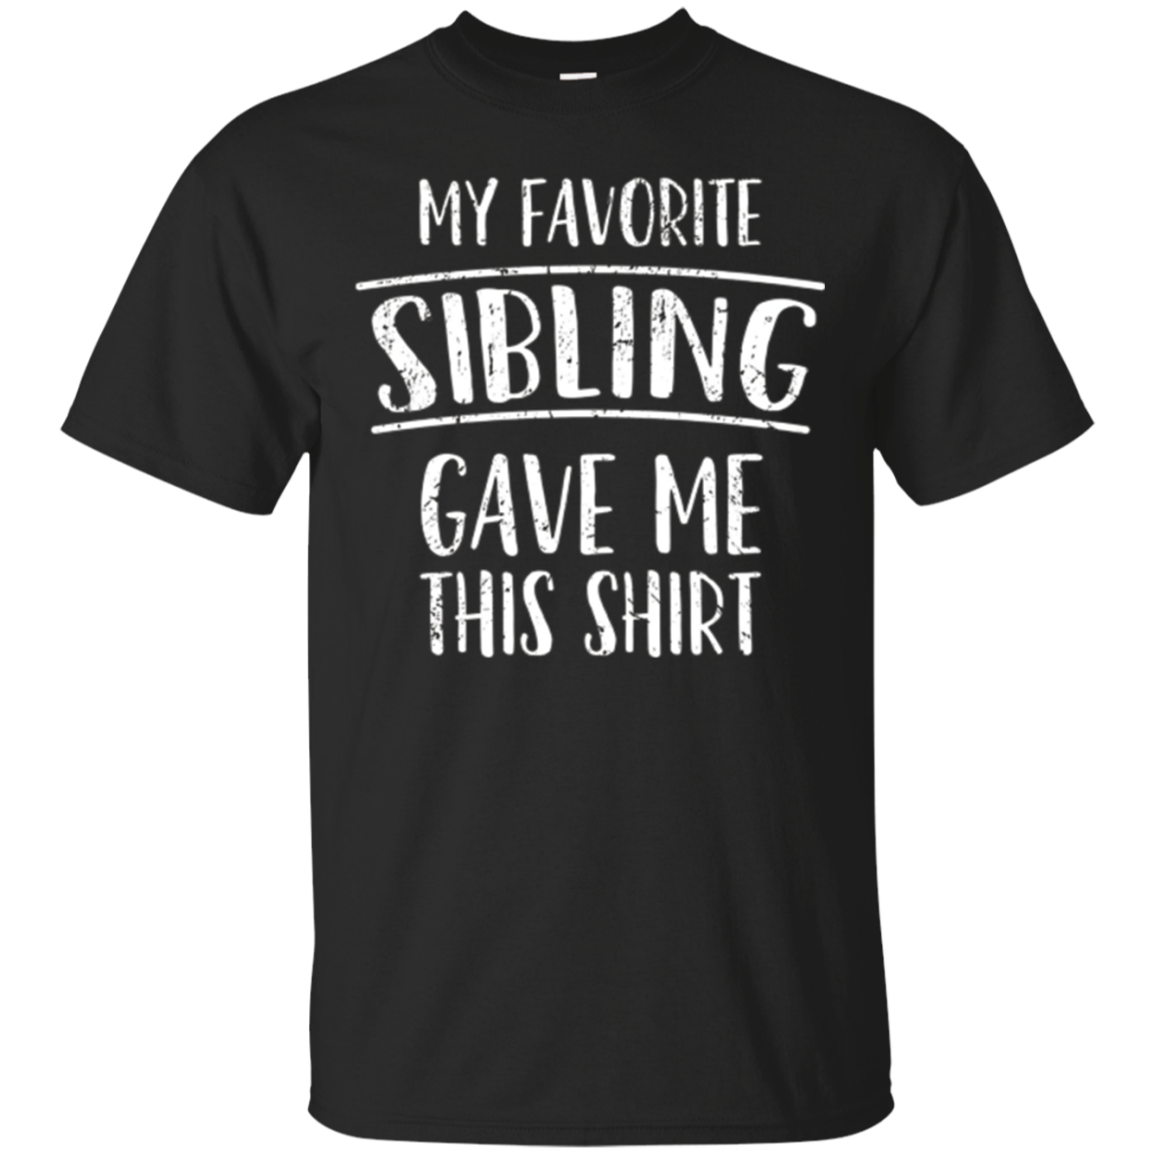 My Favorite Sibling Gave Me This Family Love Gift T-Shirt